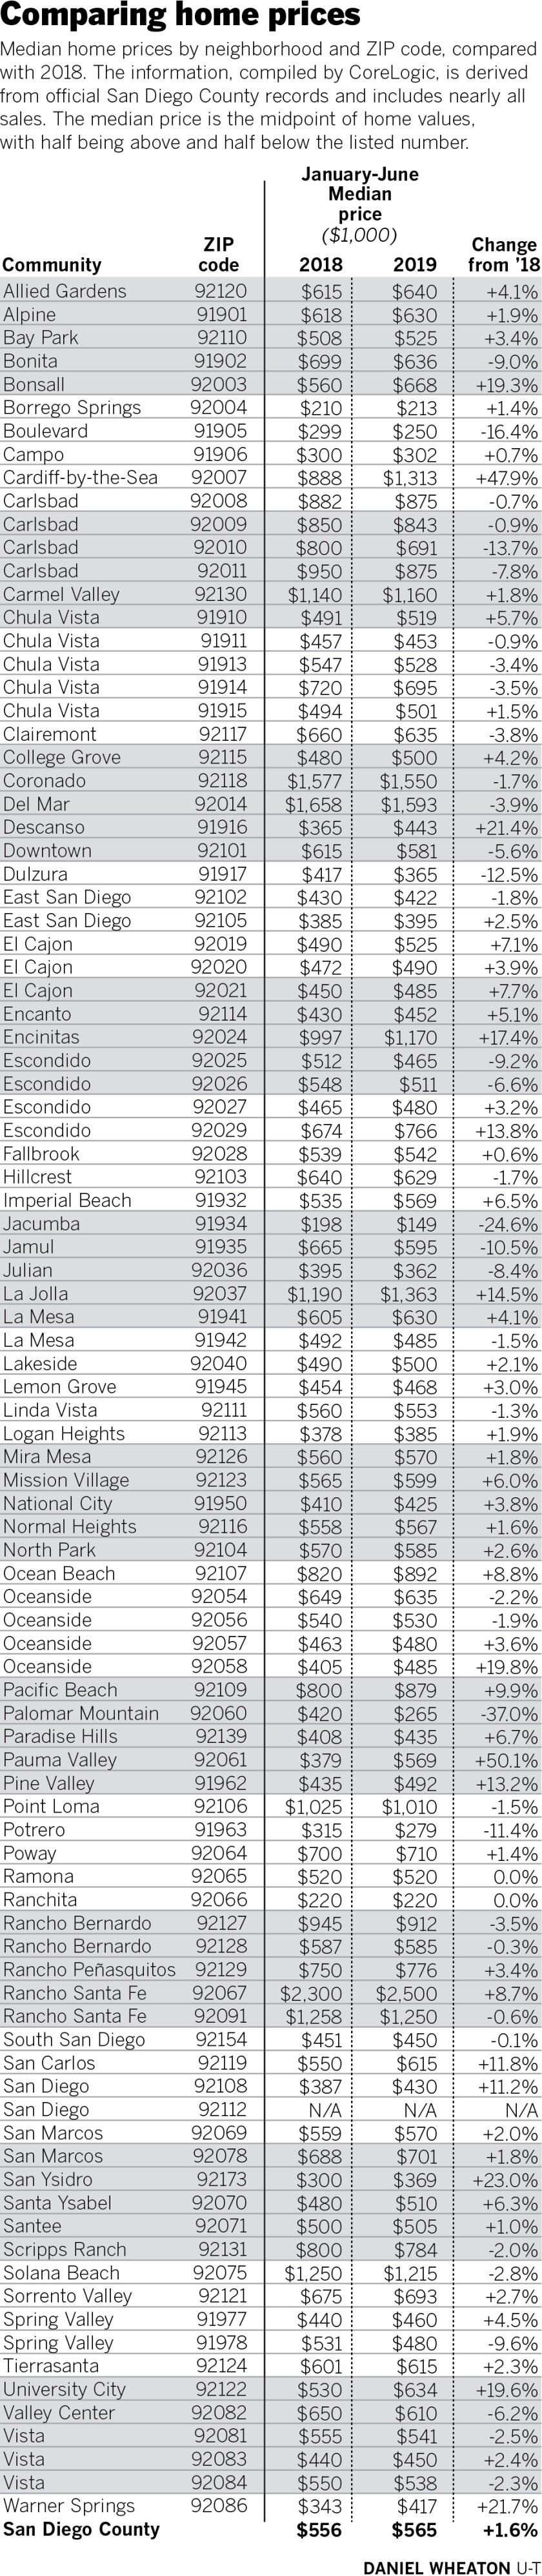 Chart shows the median home price by ZIP code in San Diego County, comparing January to June of 2018 to 2019.